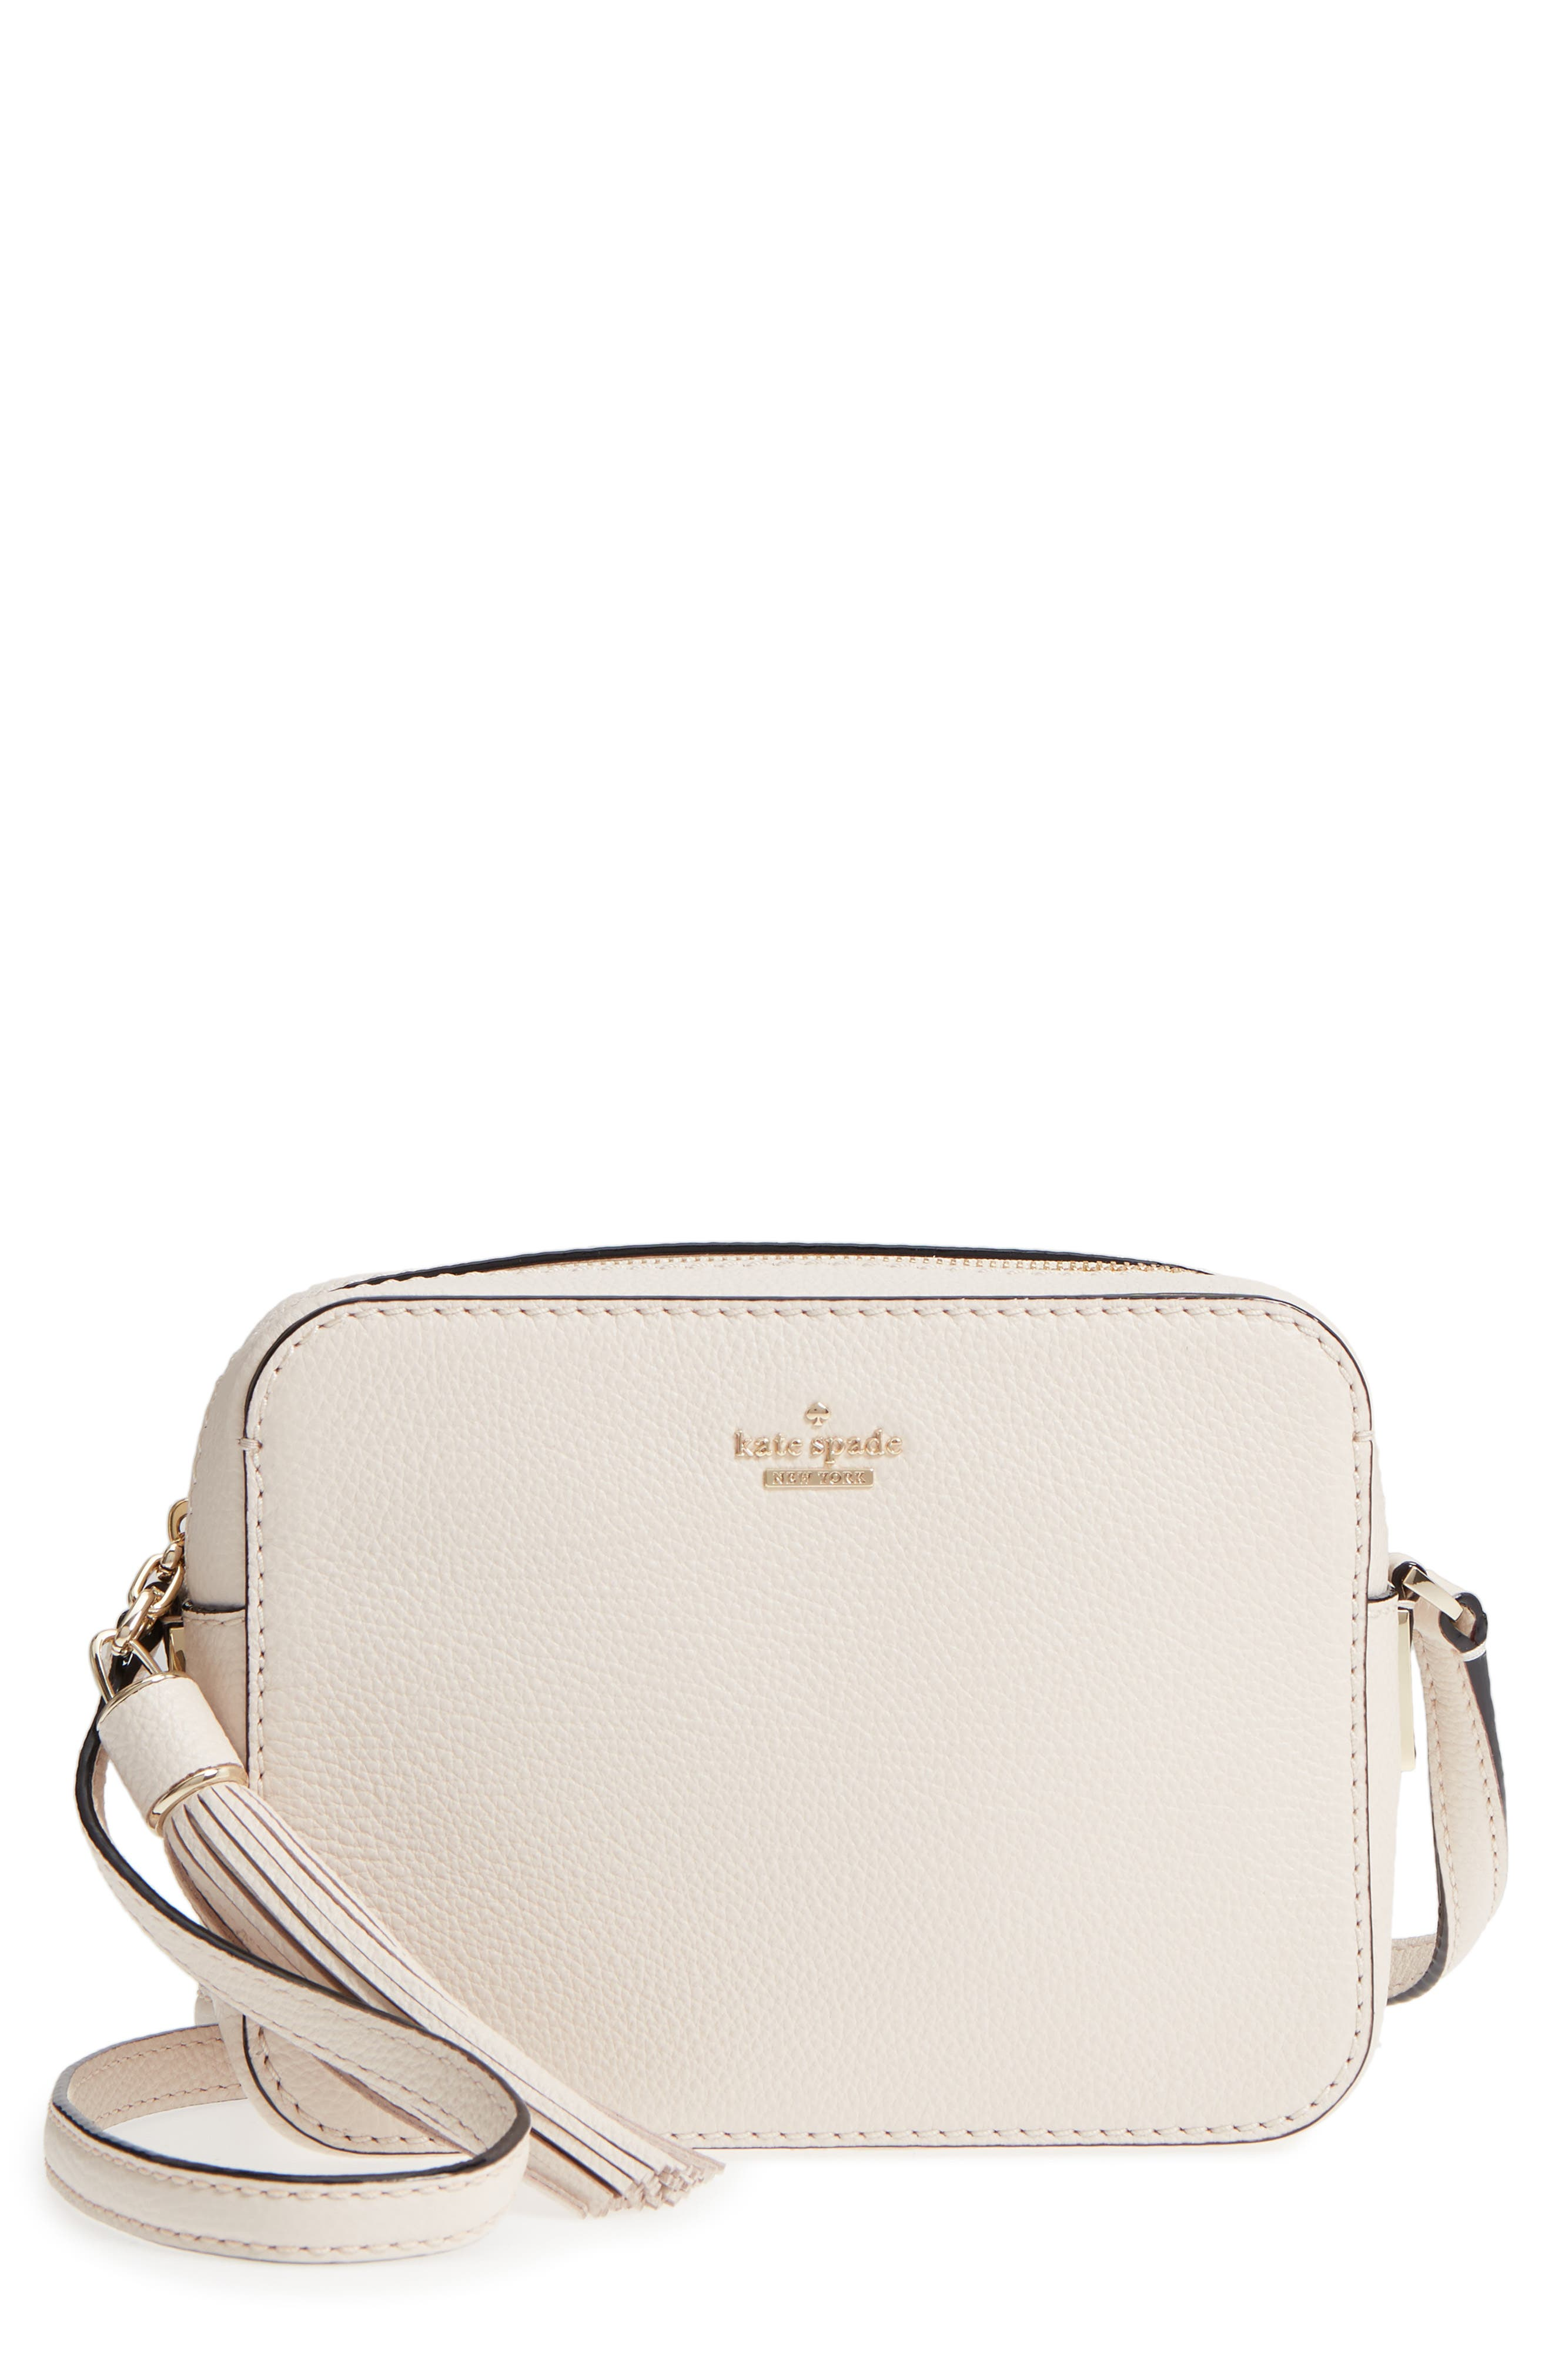 kate spade new york kingston drive – arla leather crossbody bag